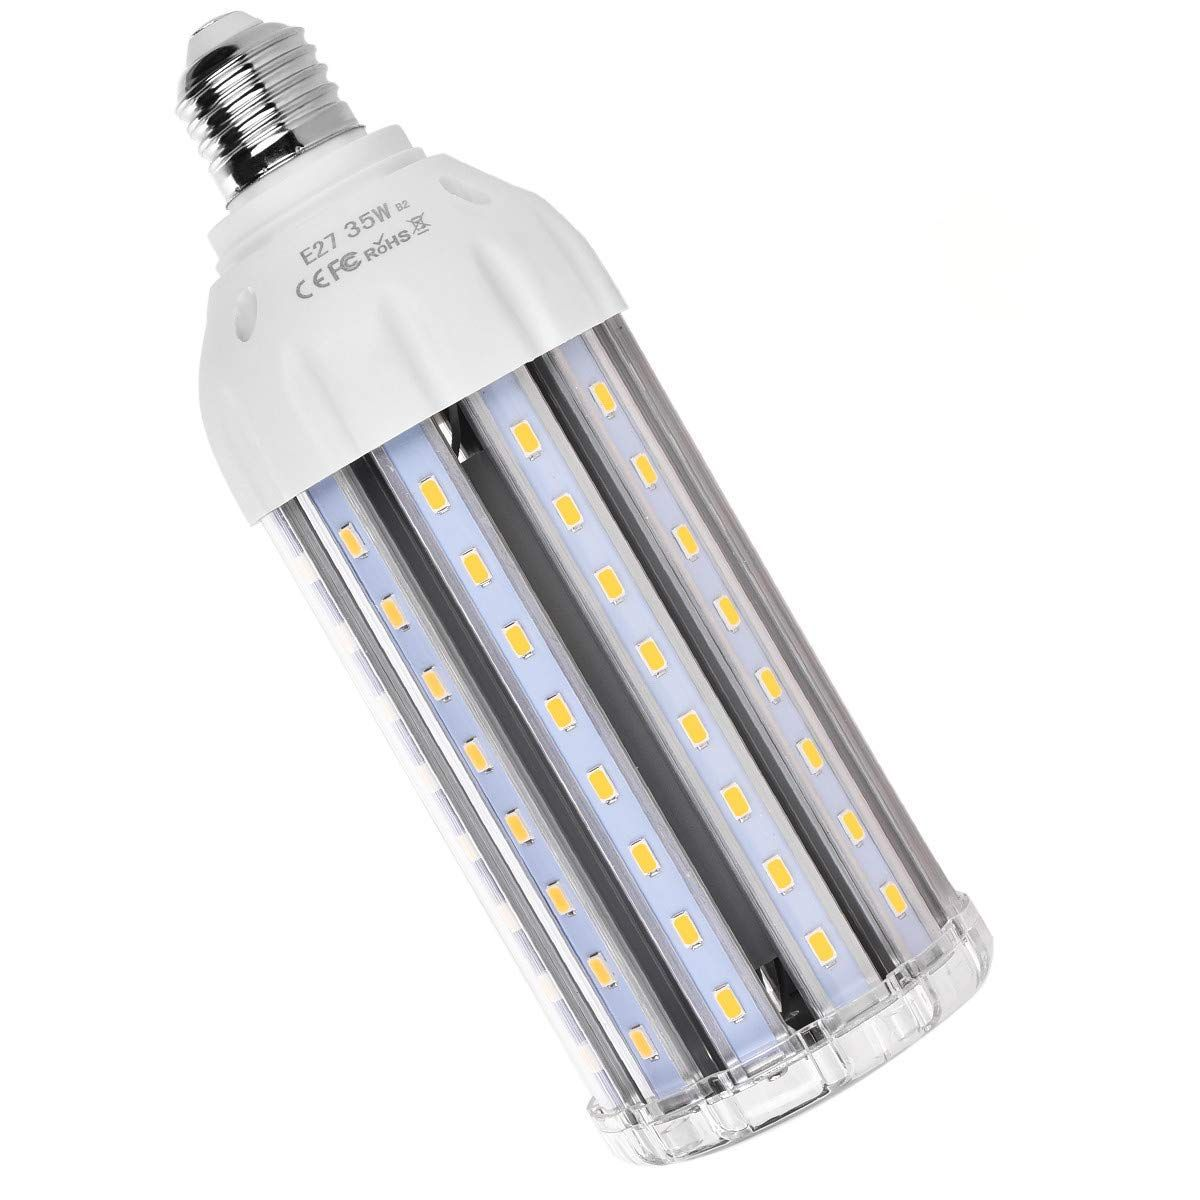 For Sale 35w E26 Led Corn Light Bulb Mhtech E26 Led Bulb Warm White 2700k 3500 Lumen 300 Watt Equivalent Large Area Light Street Lamp Led Bulb Area Lighting